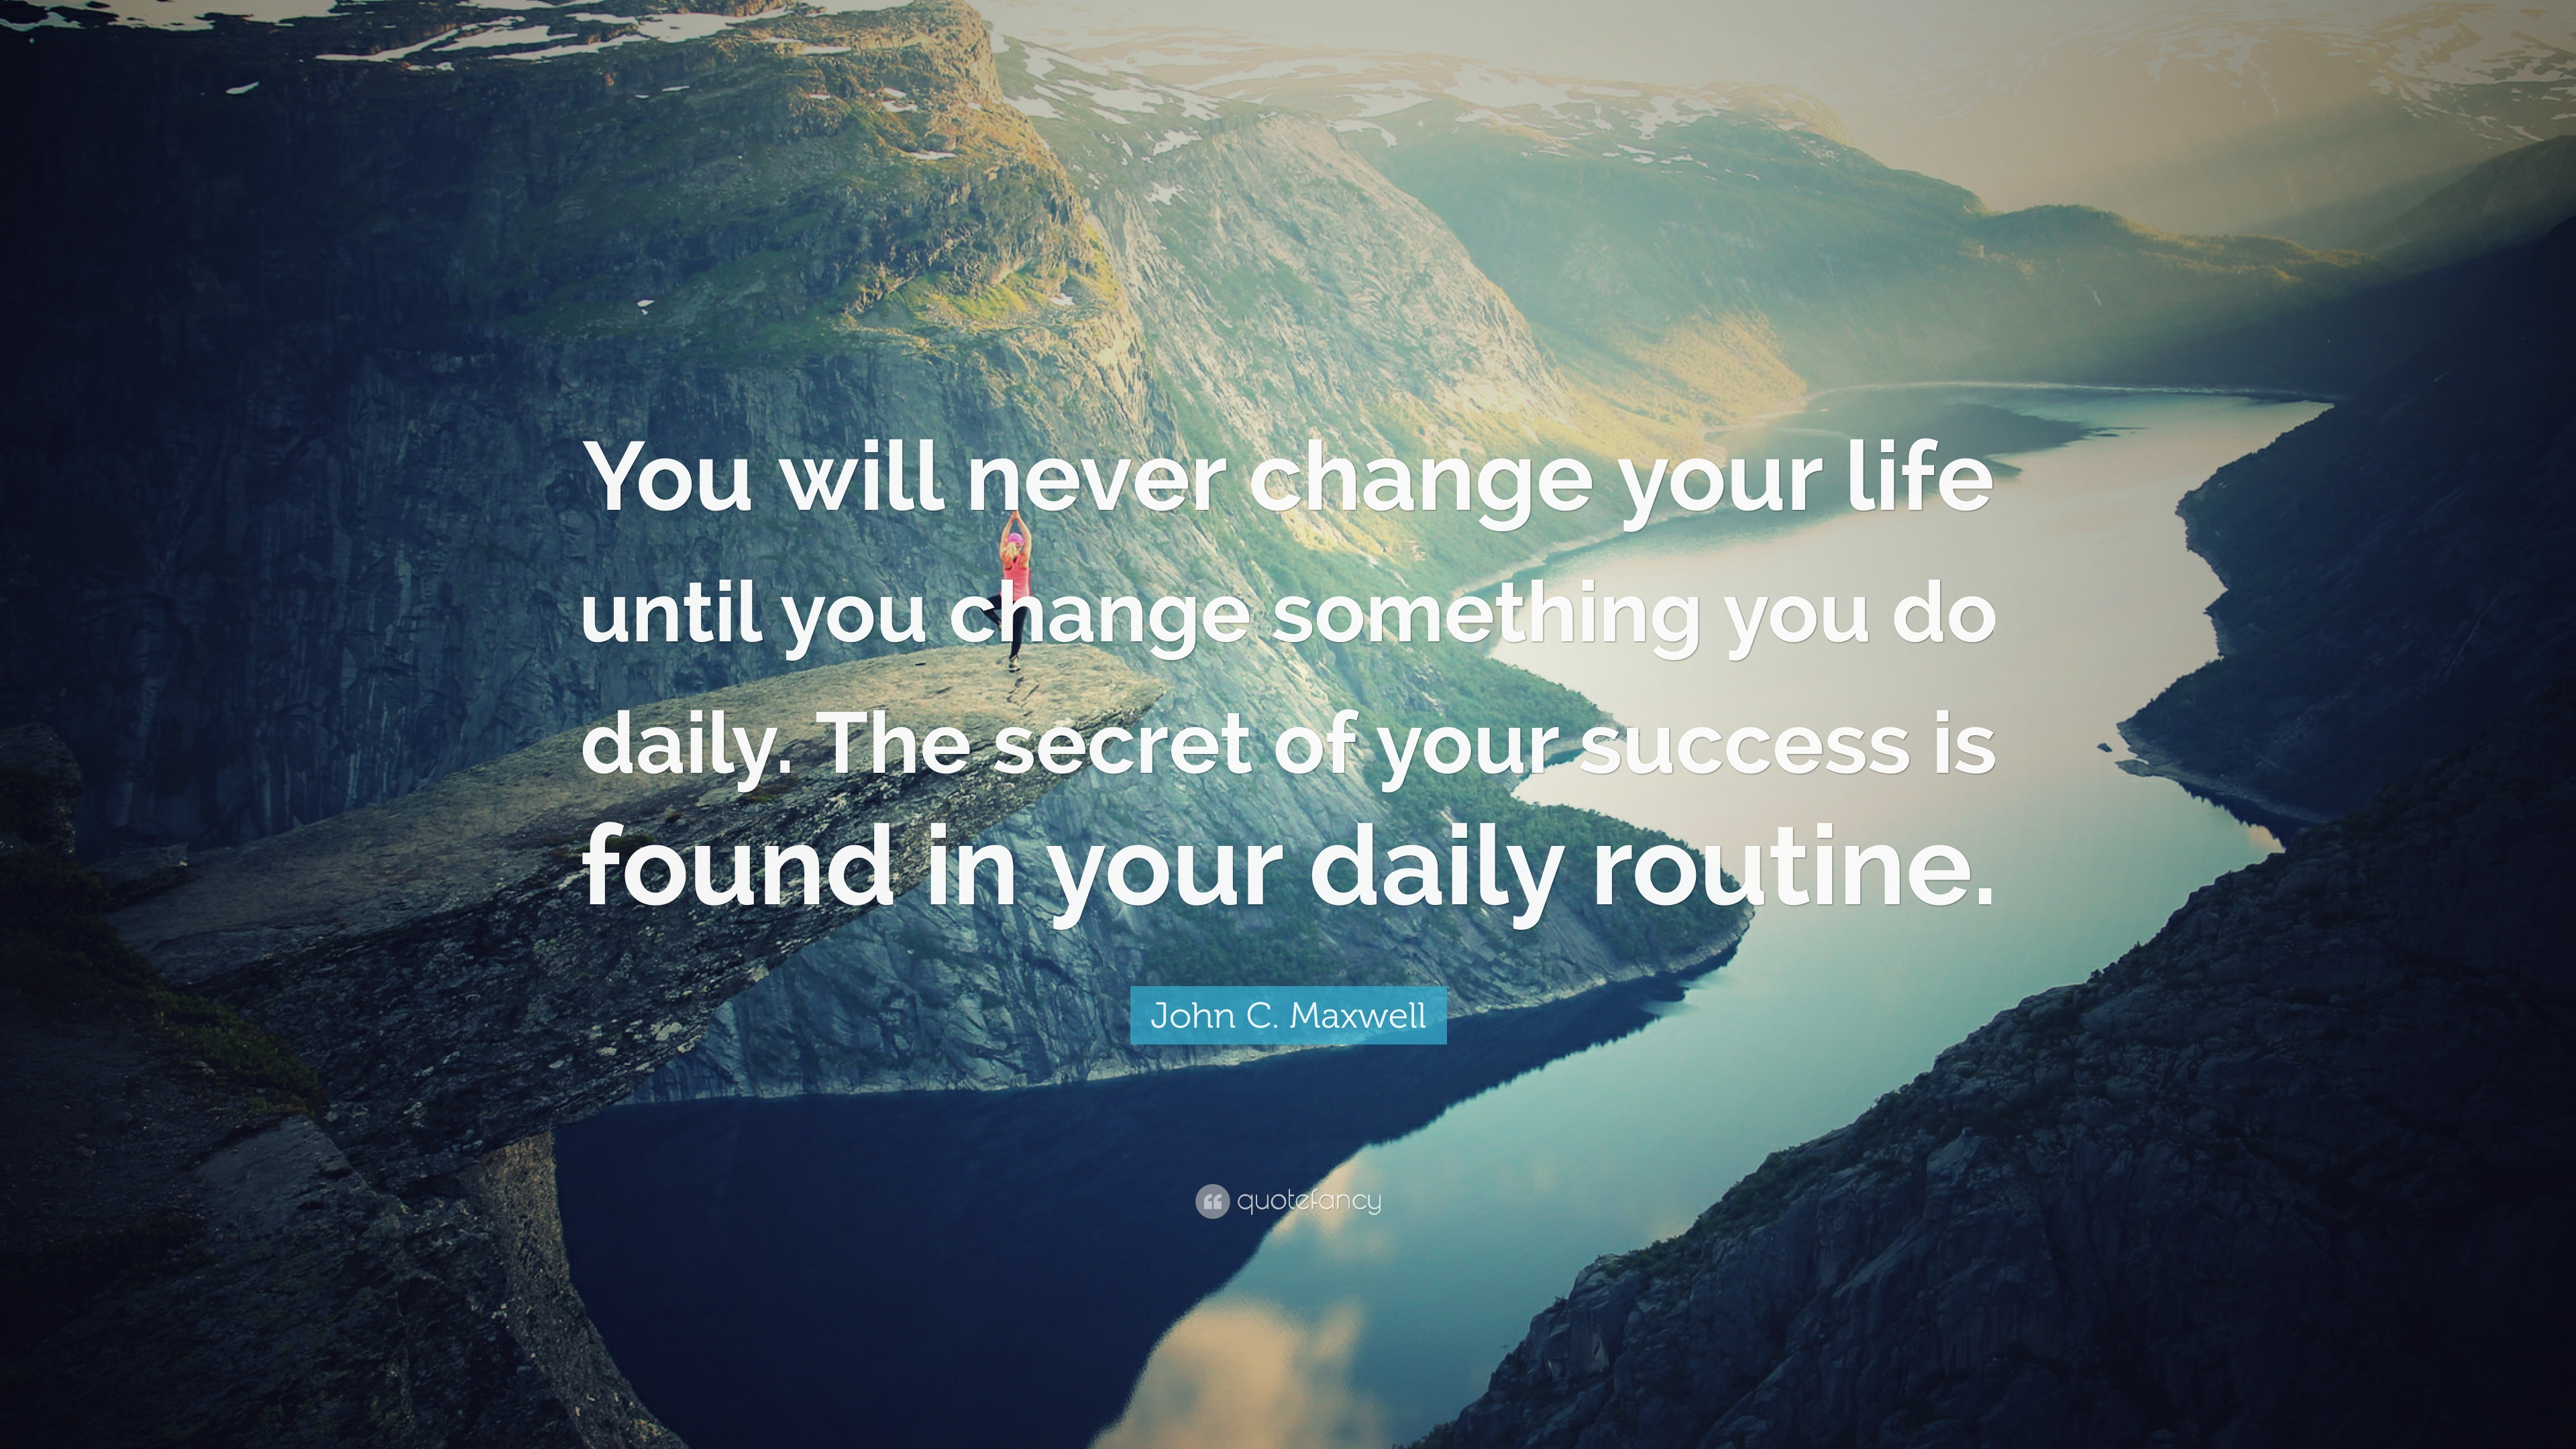 [Image] – You will never change your life until you change something you do daily